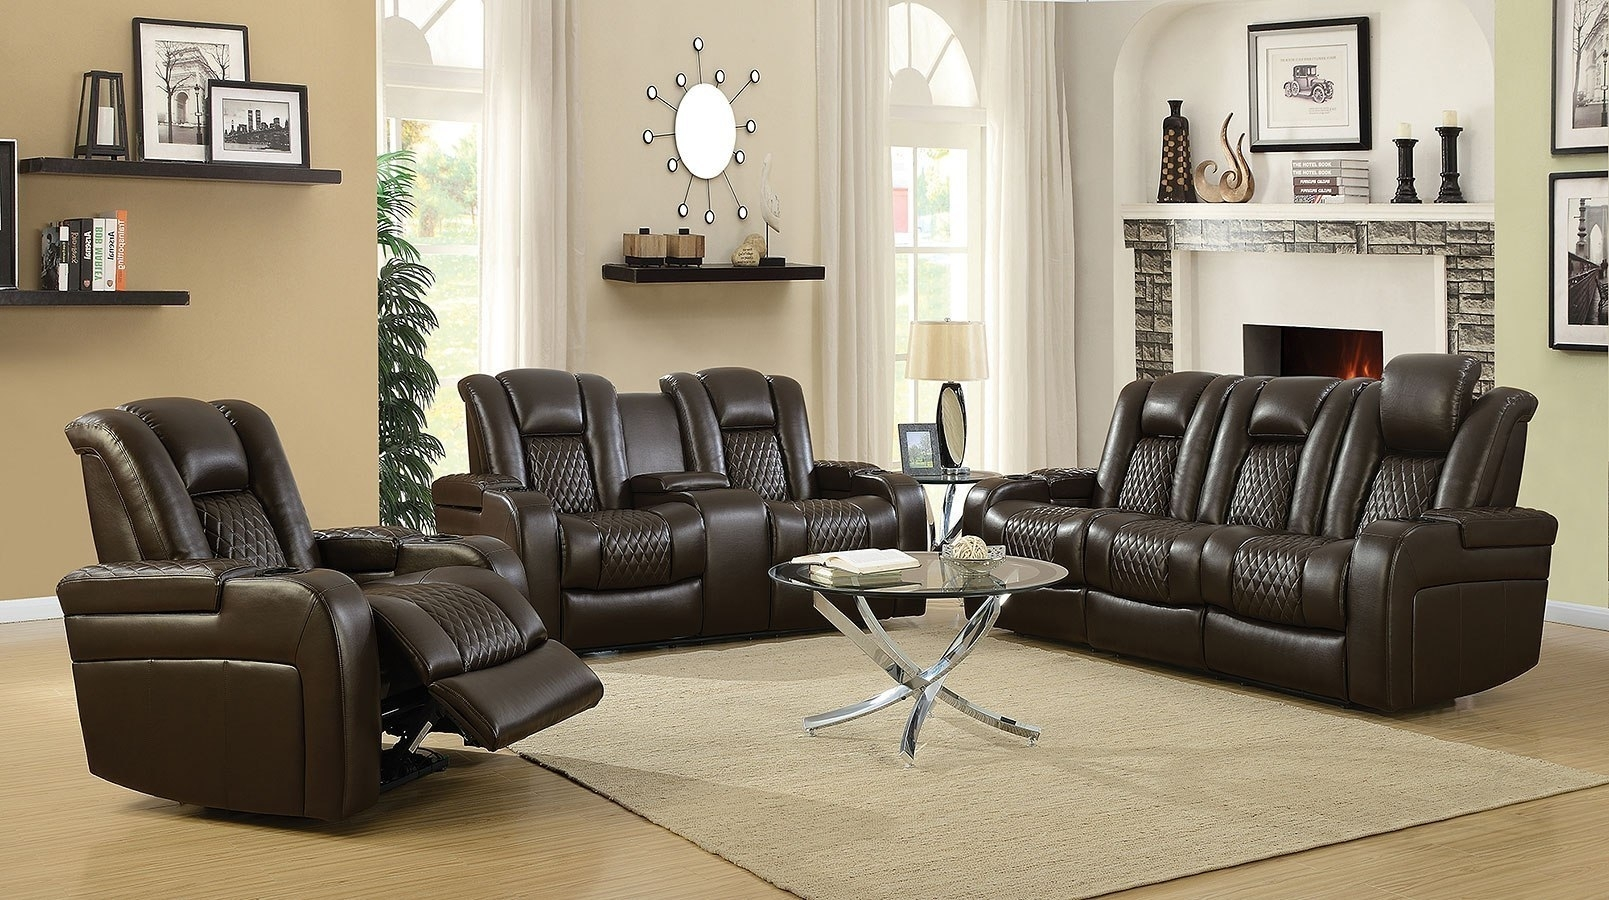 Delangelo Power Reclining Living Room Set (Brown) – Living Room Throughout Denali Light Grey 6 Piece Reclining Sectionals With 2 Power Headrests (View 19 of 25)